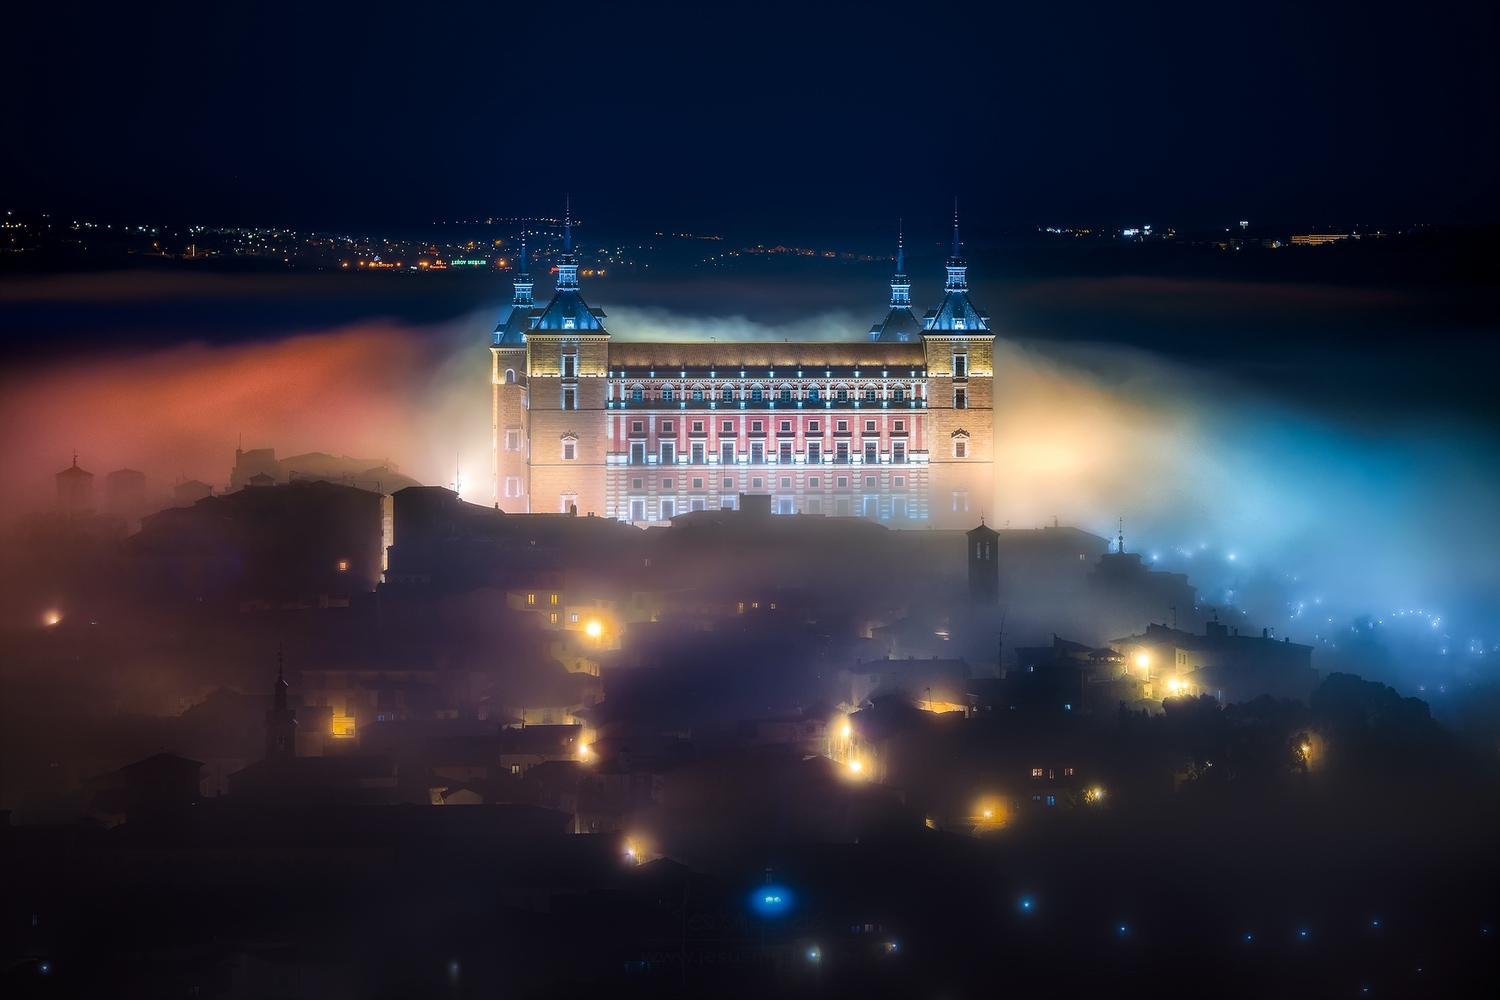 jesusmgarcia_mystic_foggy_night_in_toledo_city_30x20